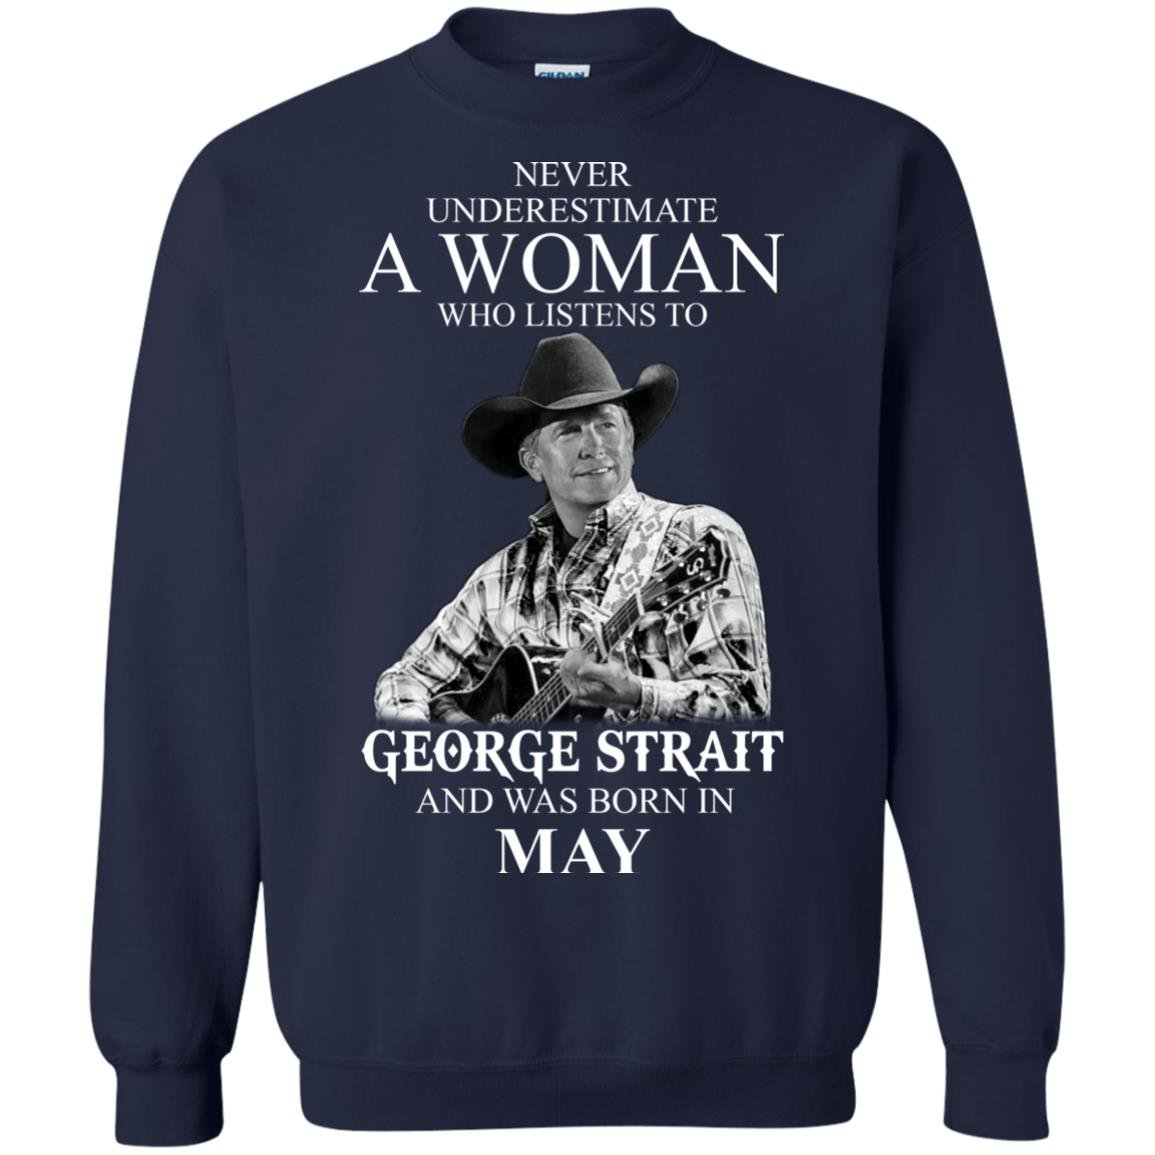 image 417 - Never Underestimate A Woman Who Listens To George Strait And Was Born In May shirt